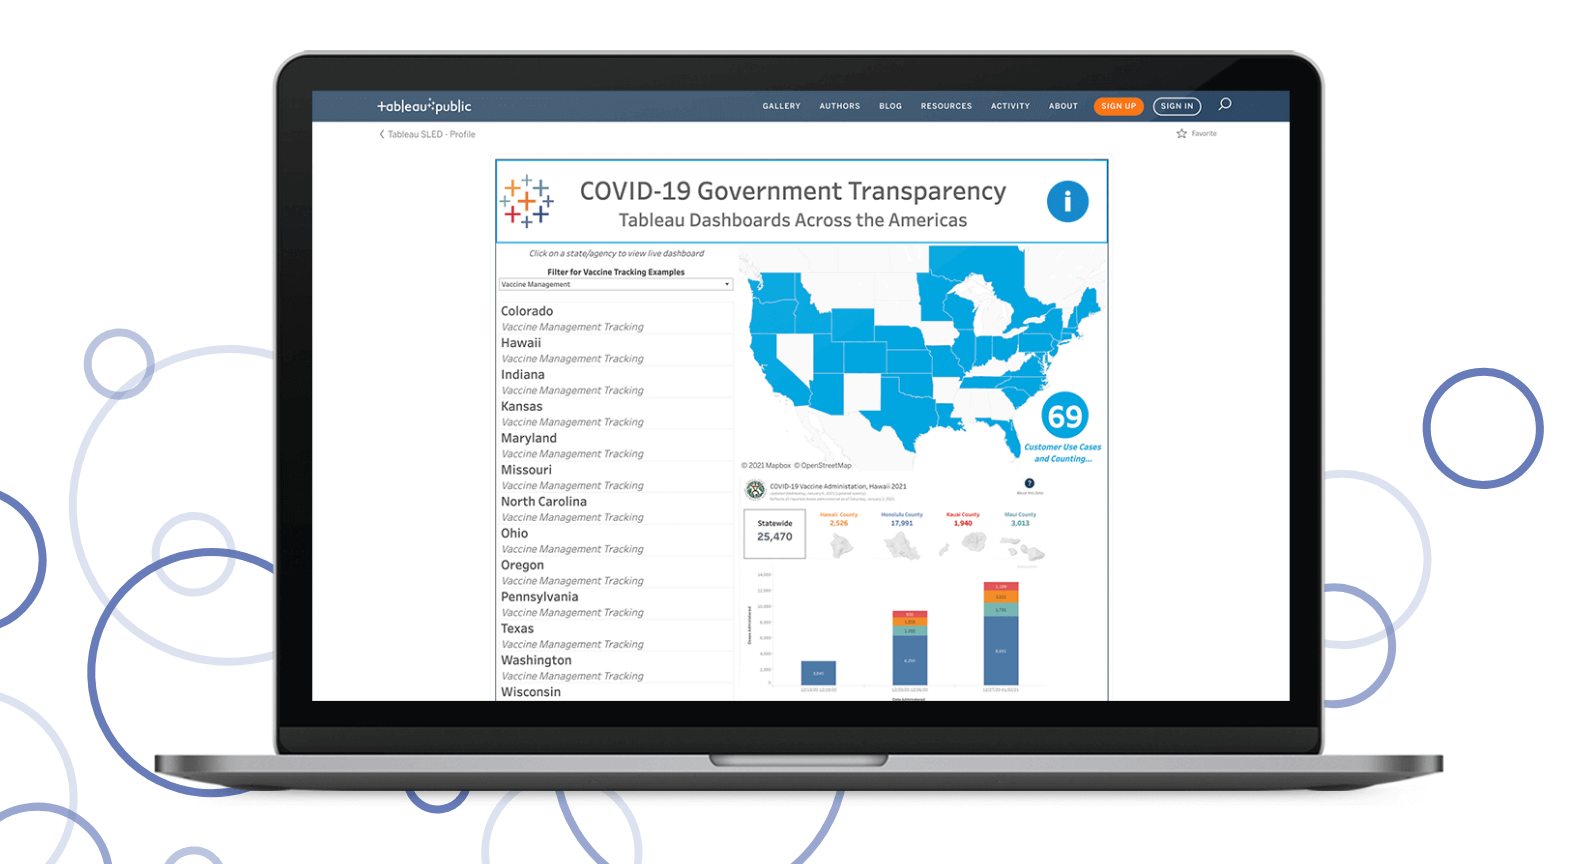 COVID-19 Transparency Dashboard